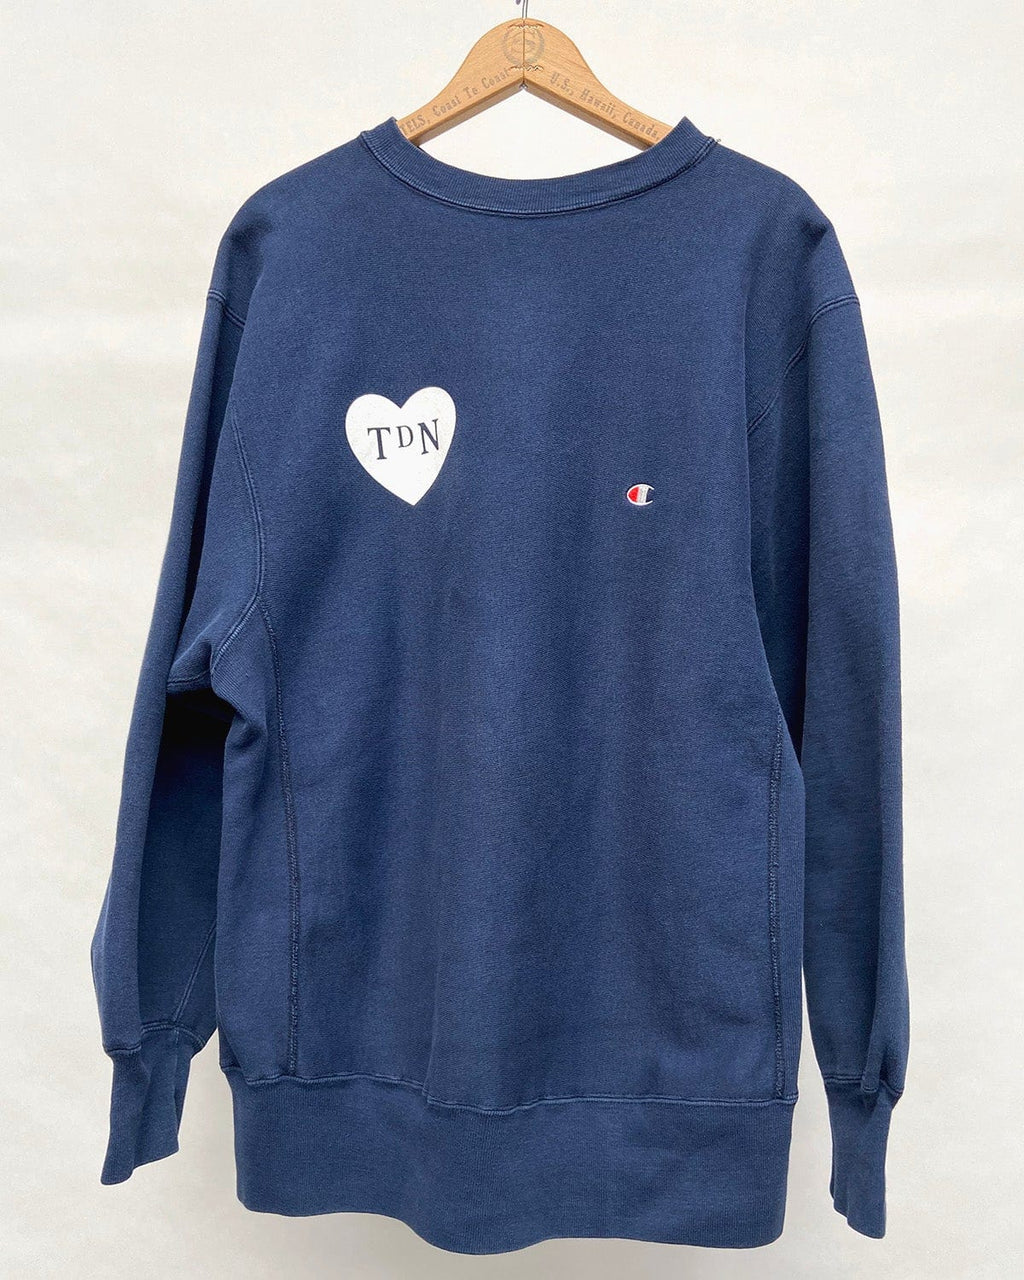 SOLD OUT: Vintage Champion Made In USA Navy